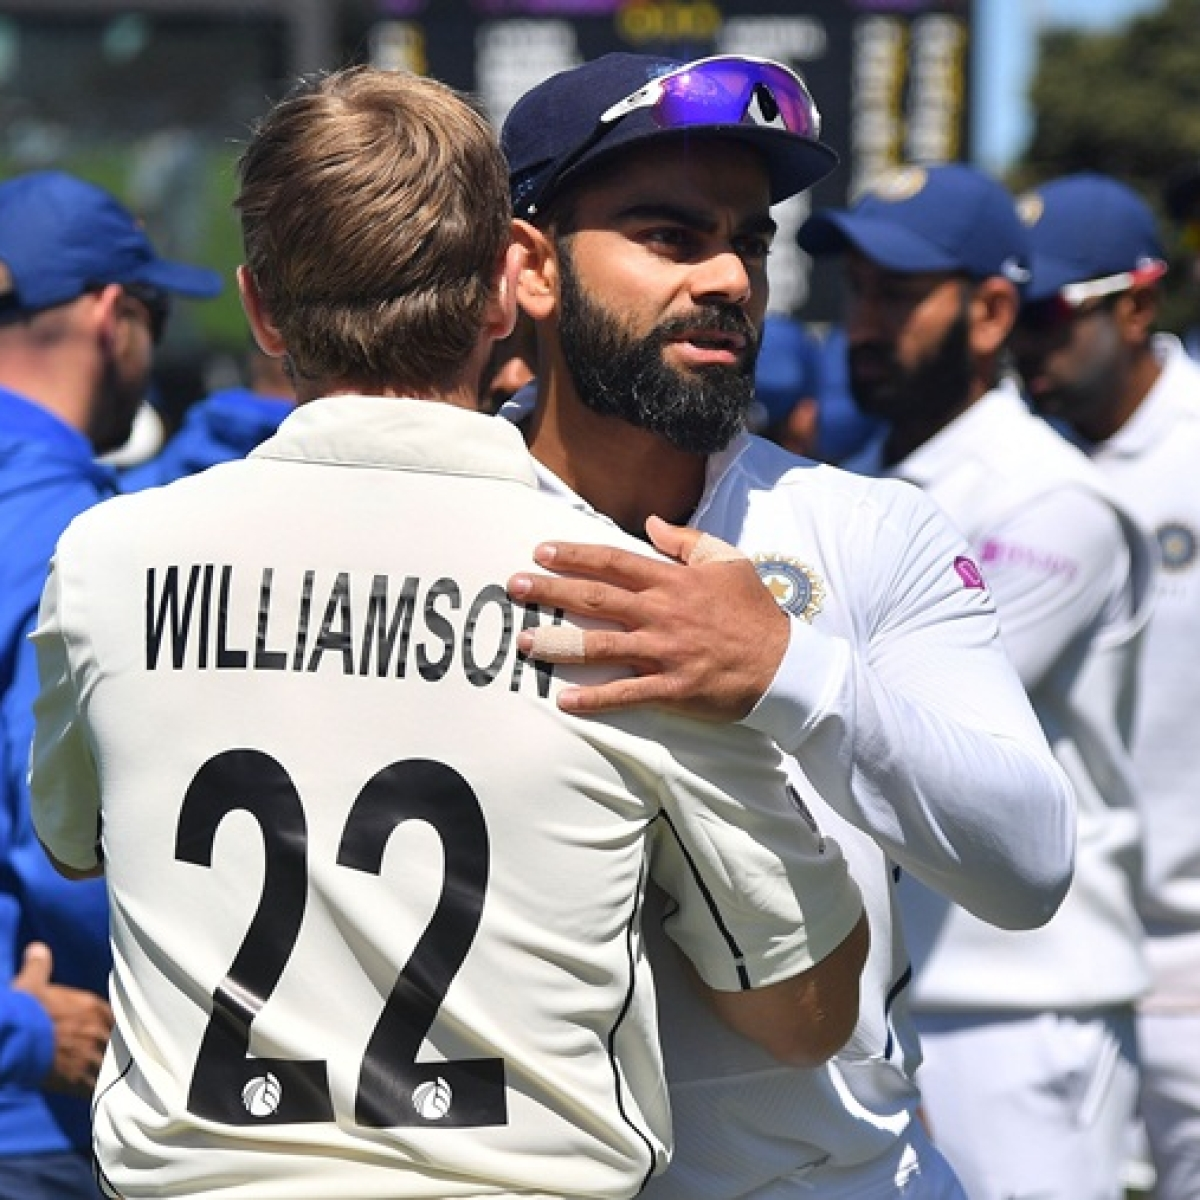 NZ vs IND, 1st Test: New Zealand beat India by 10 wickets to take 1-0 lead in series